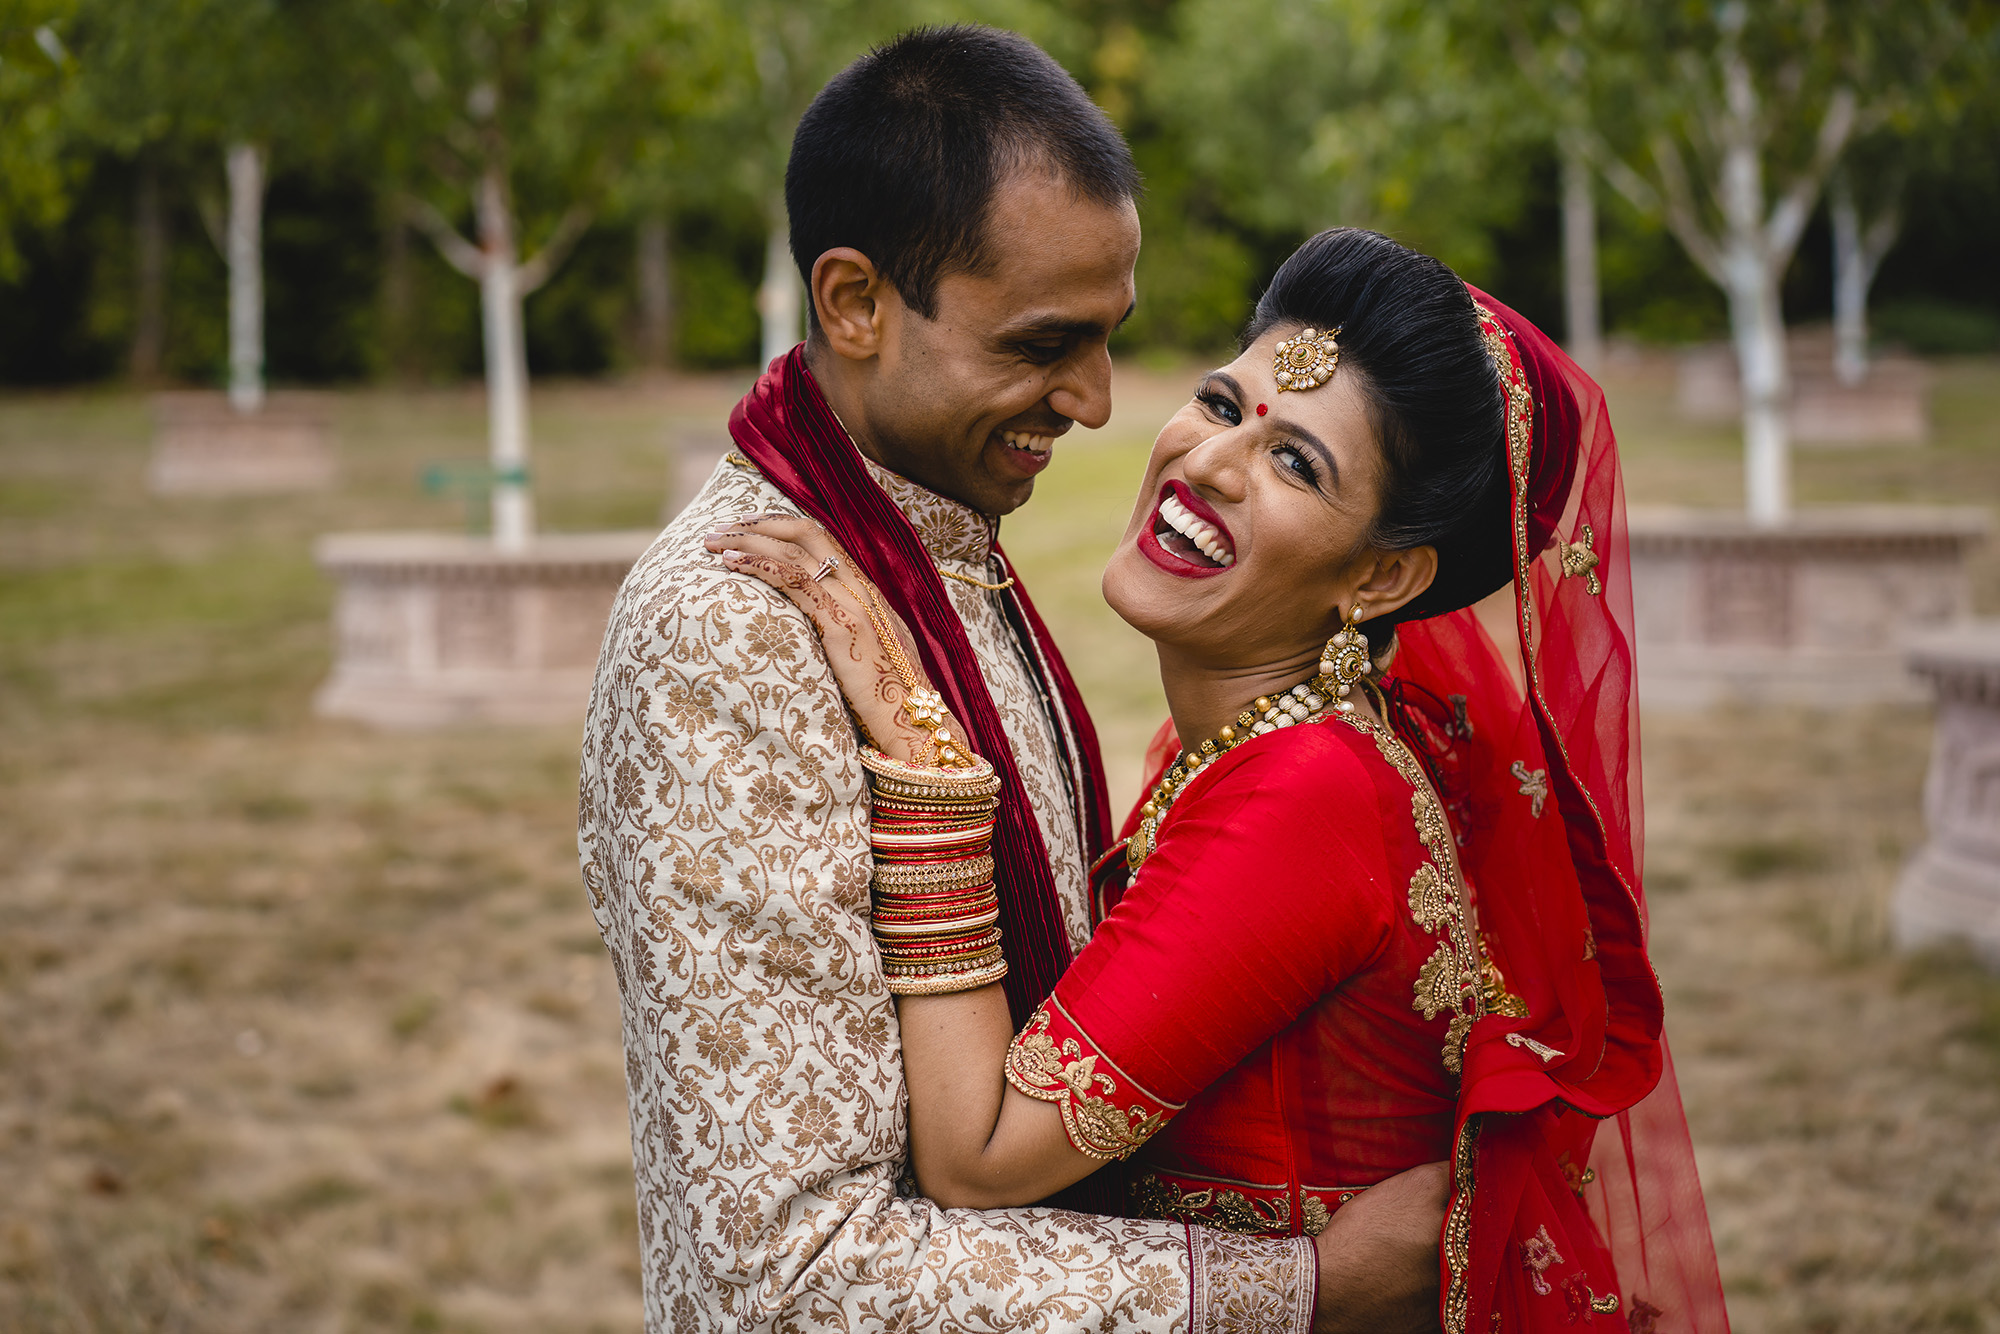 portrait of the bride and groom in their indian wedding outfits